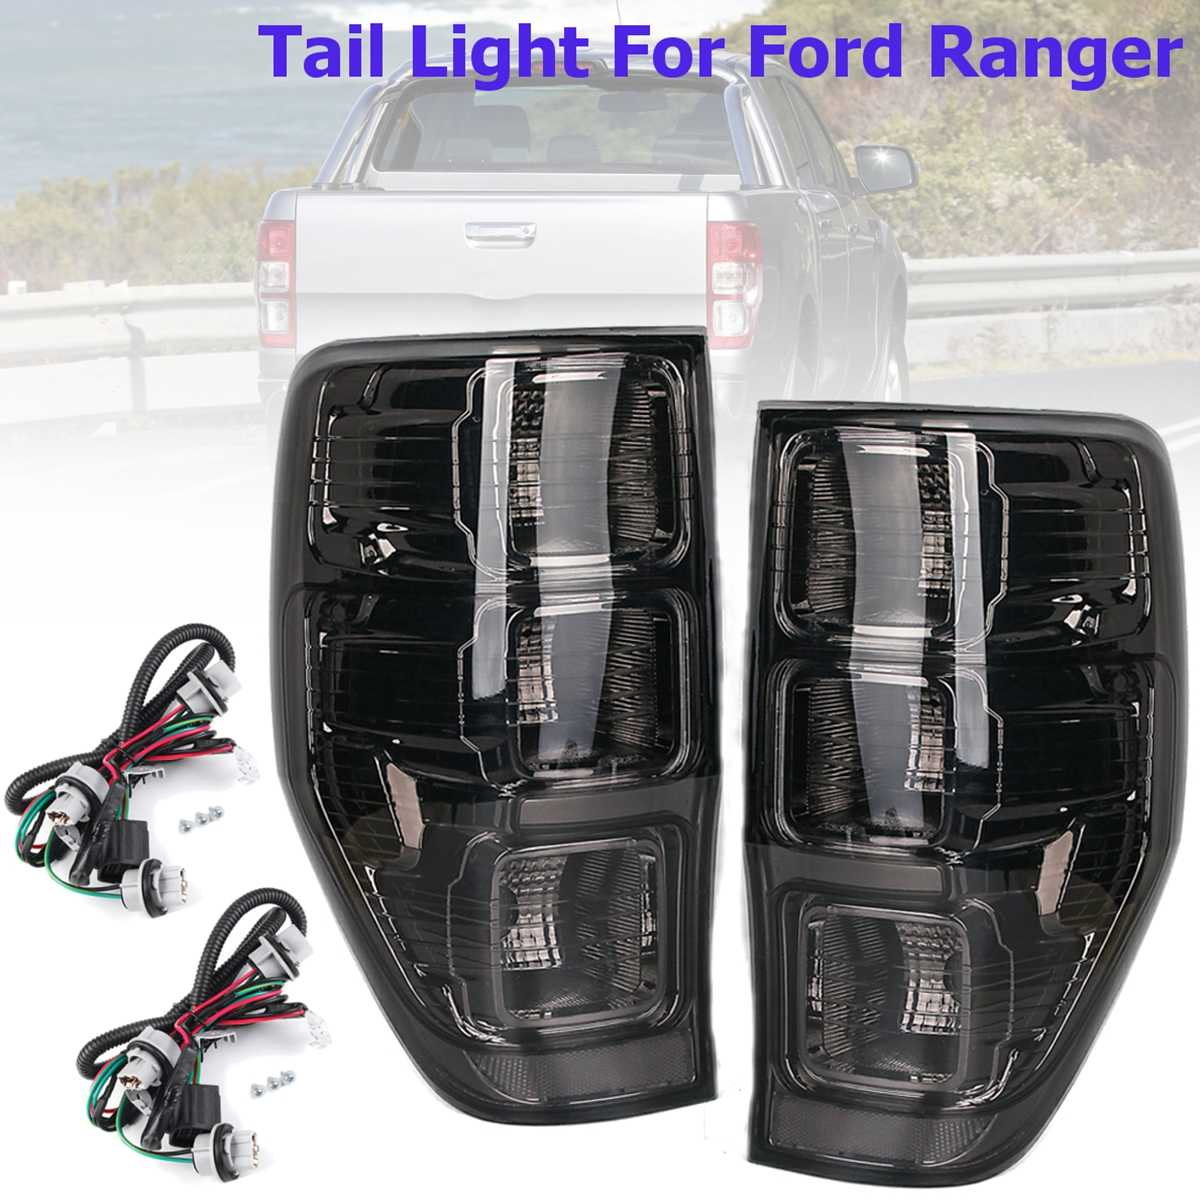 Rear Left/Right Tail Smoked Rear Tail Lights Lamp For Ford Ranger PX T6 MK1 MK2 WildTrak XLT XL XLS